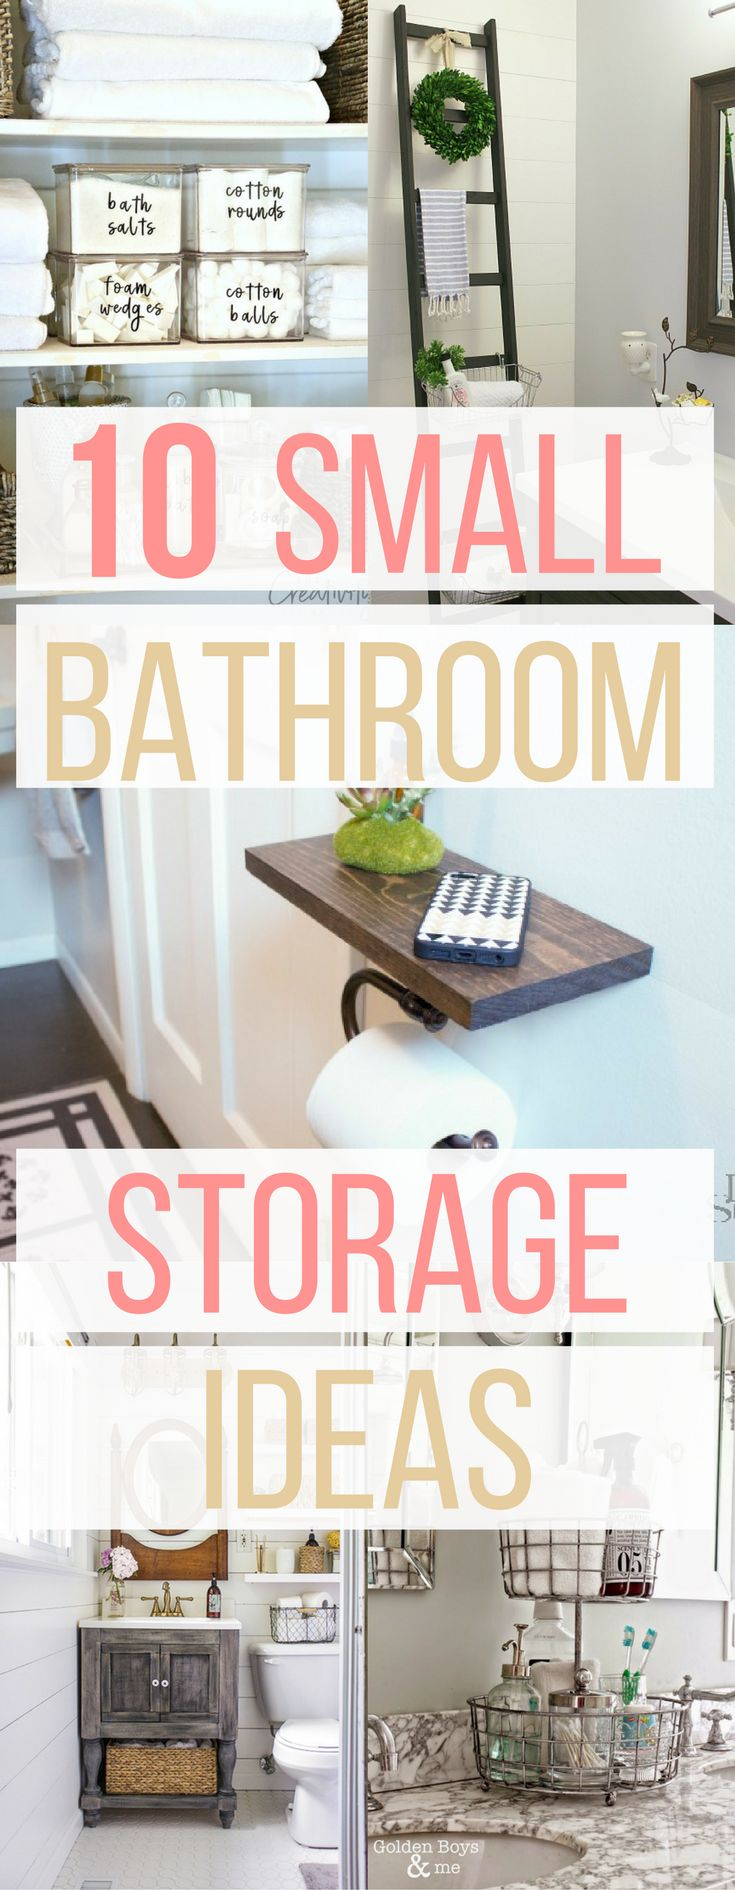 10 Small Bathroom Storage and Organization Ideas | DIY, Unique, Towels, Toilet Ladder, Label bins, Lazy Susan, Floating Shelves, Under The Sink Storage, Toilet Roll Holder